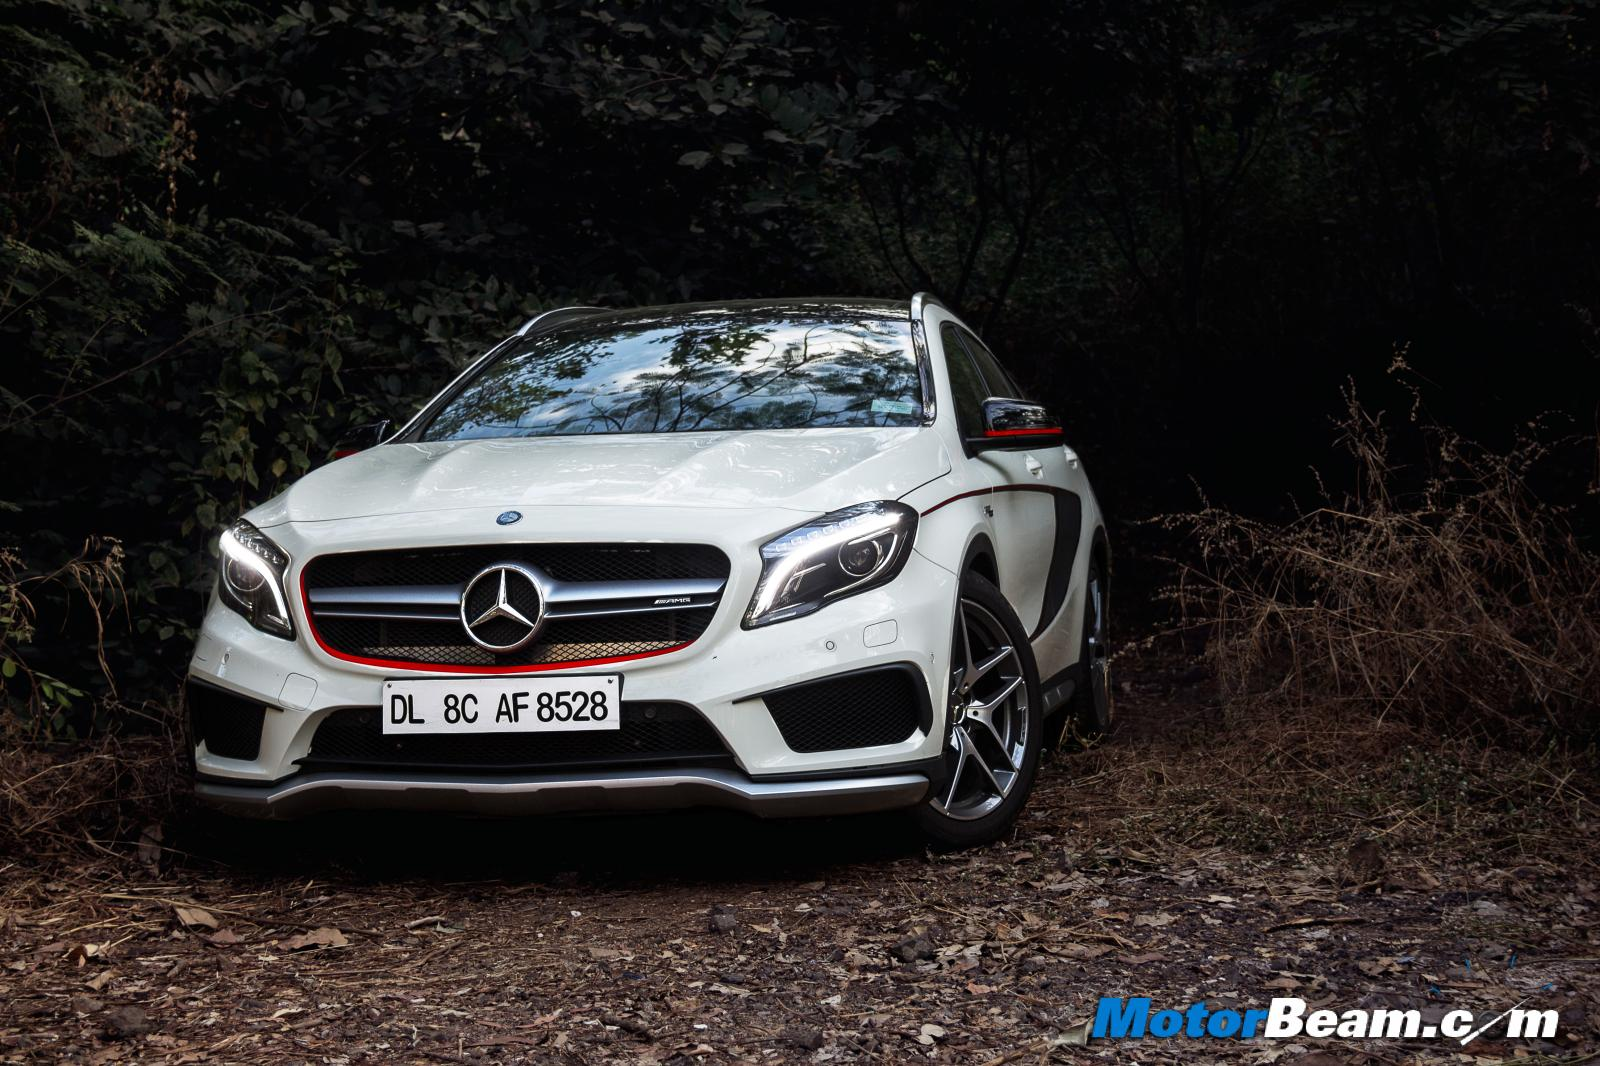 Mercedes GLA45 to dazzle on roads; comes at a slight premium